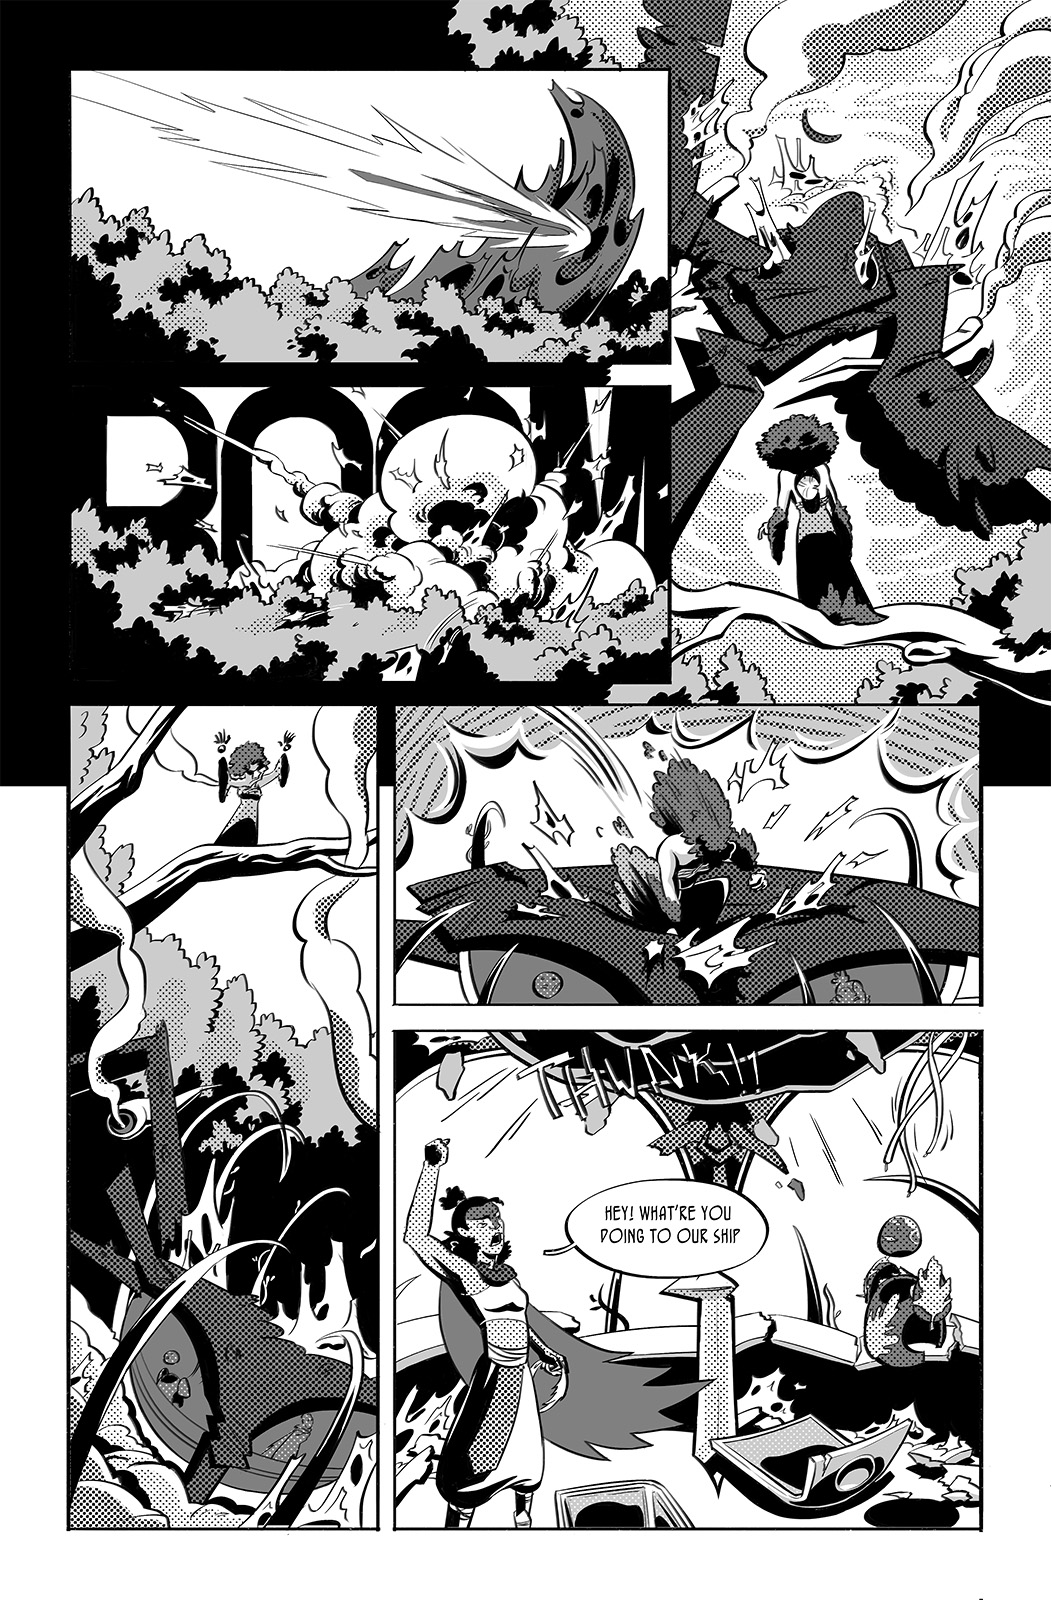 Jettisoned page 4. The Peregrinus crashes into the creature which shatters. Down shot of the ship, tattered and smoking, there's a figure in the foreground. The newcomer raises vines from the earth to surround the Peregrinus before hopping onto the ship's roof.